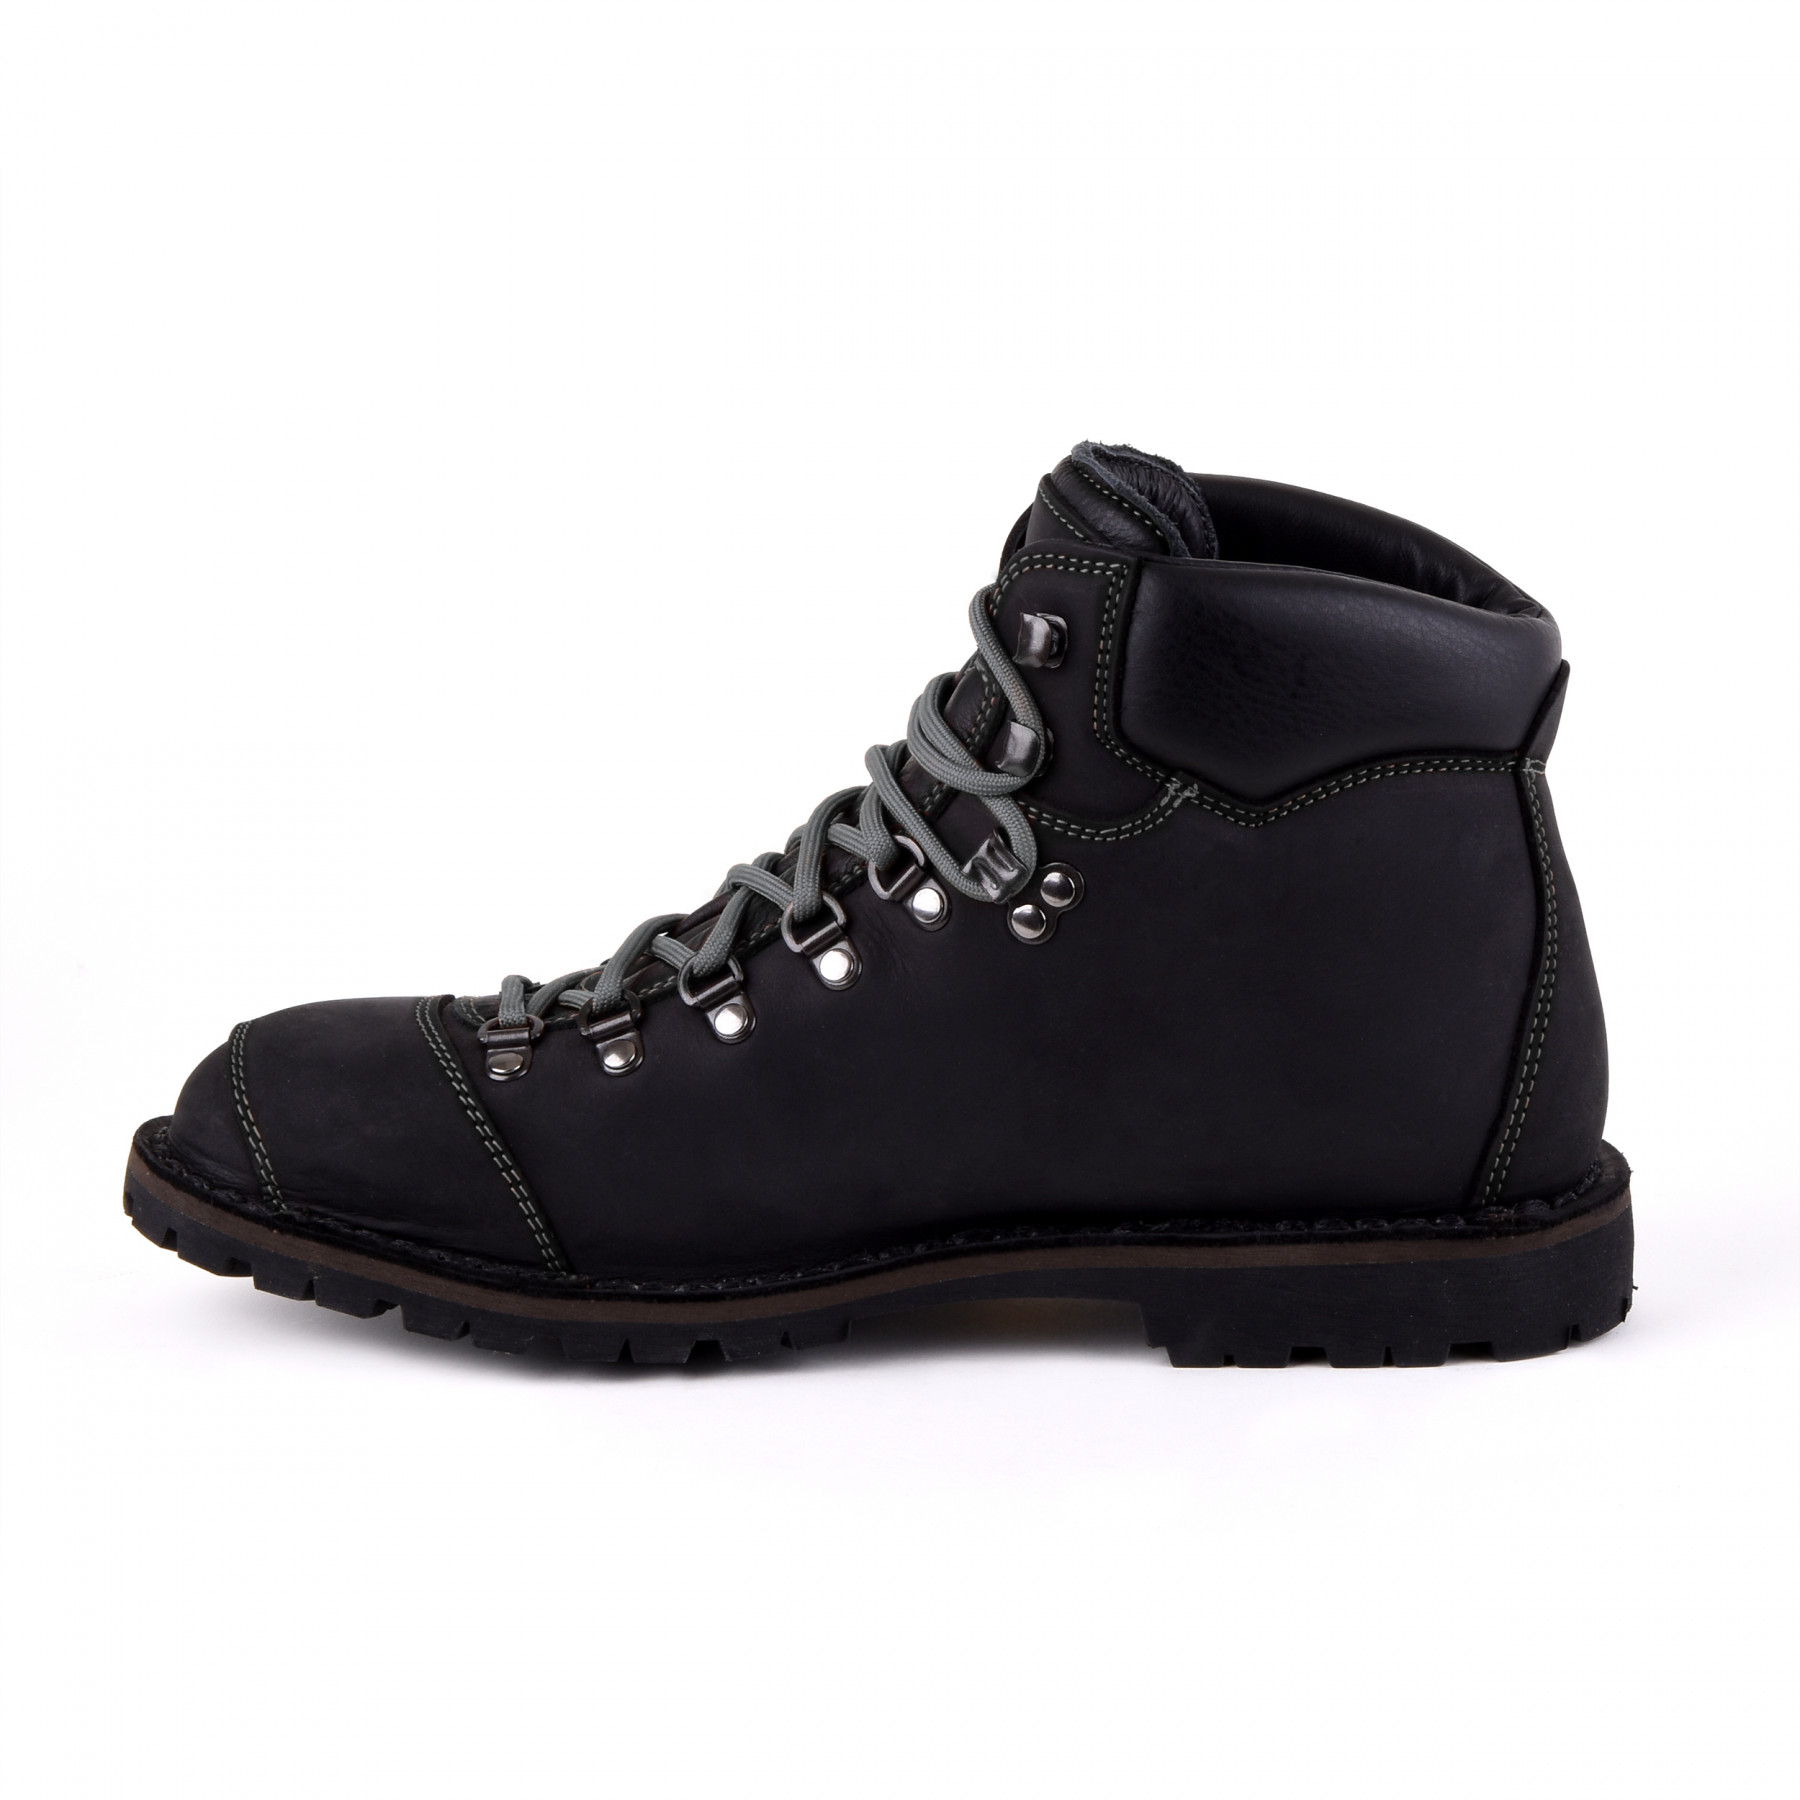 Biker Boot Adventure Denver Black, schwarze Herren Stiefel, graue Nähte